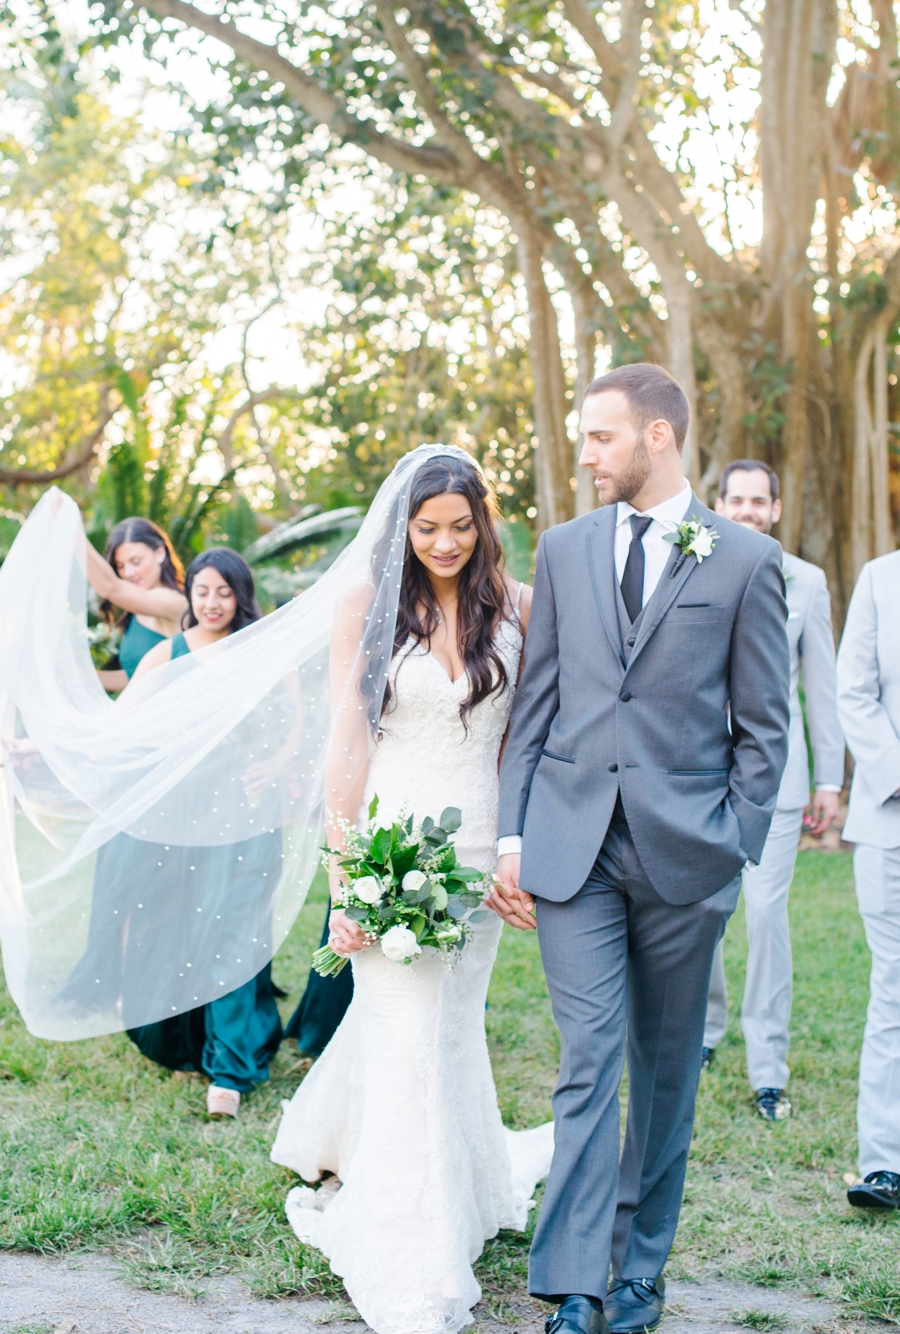 An Elegant Sarasota Garden Wedding via TheELD.com